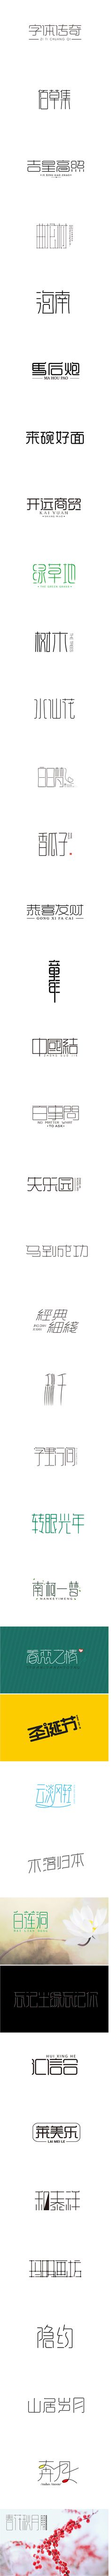 字体设计 Chinese typeface design on Typography Served